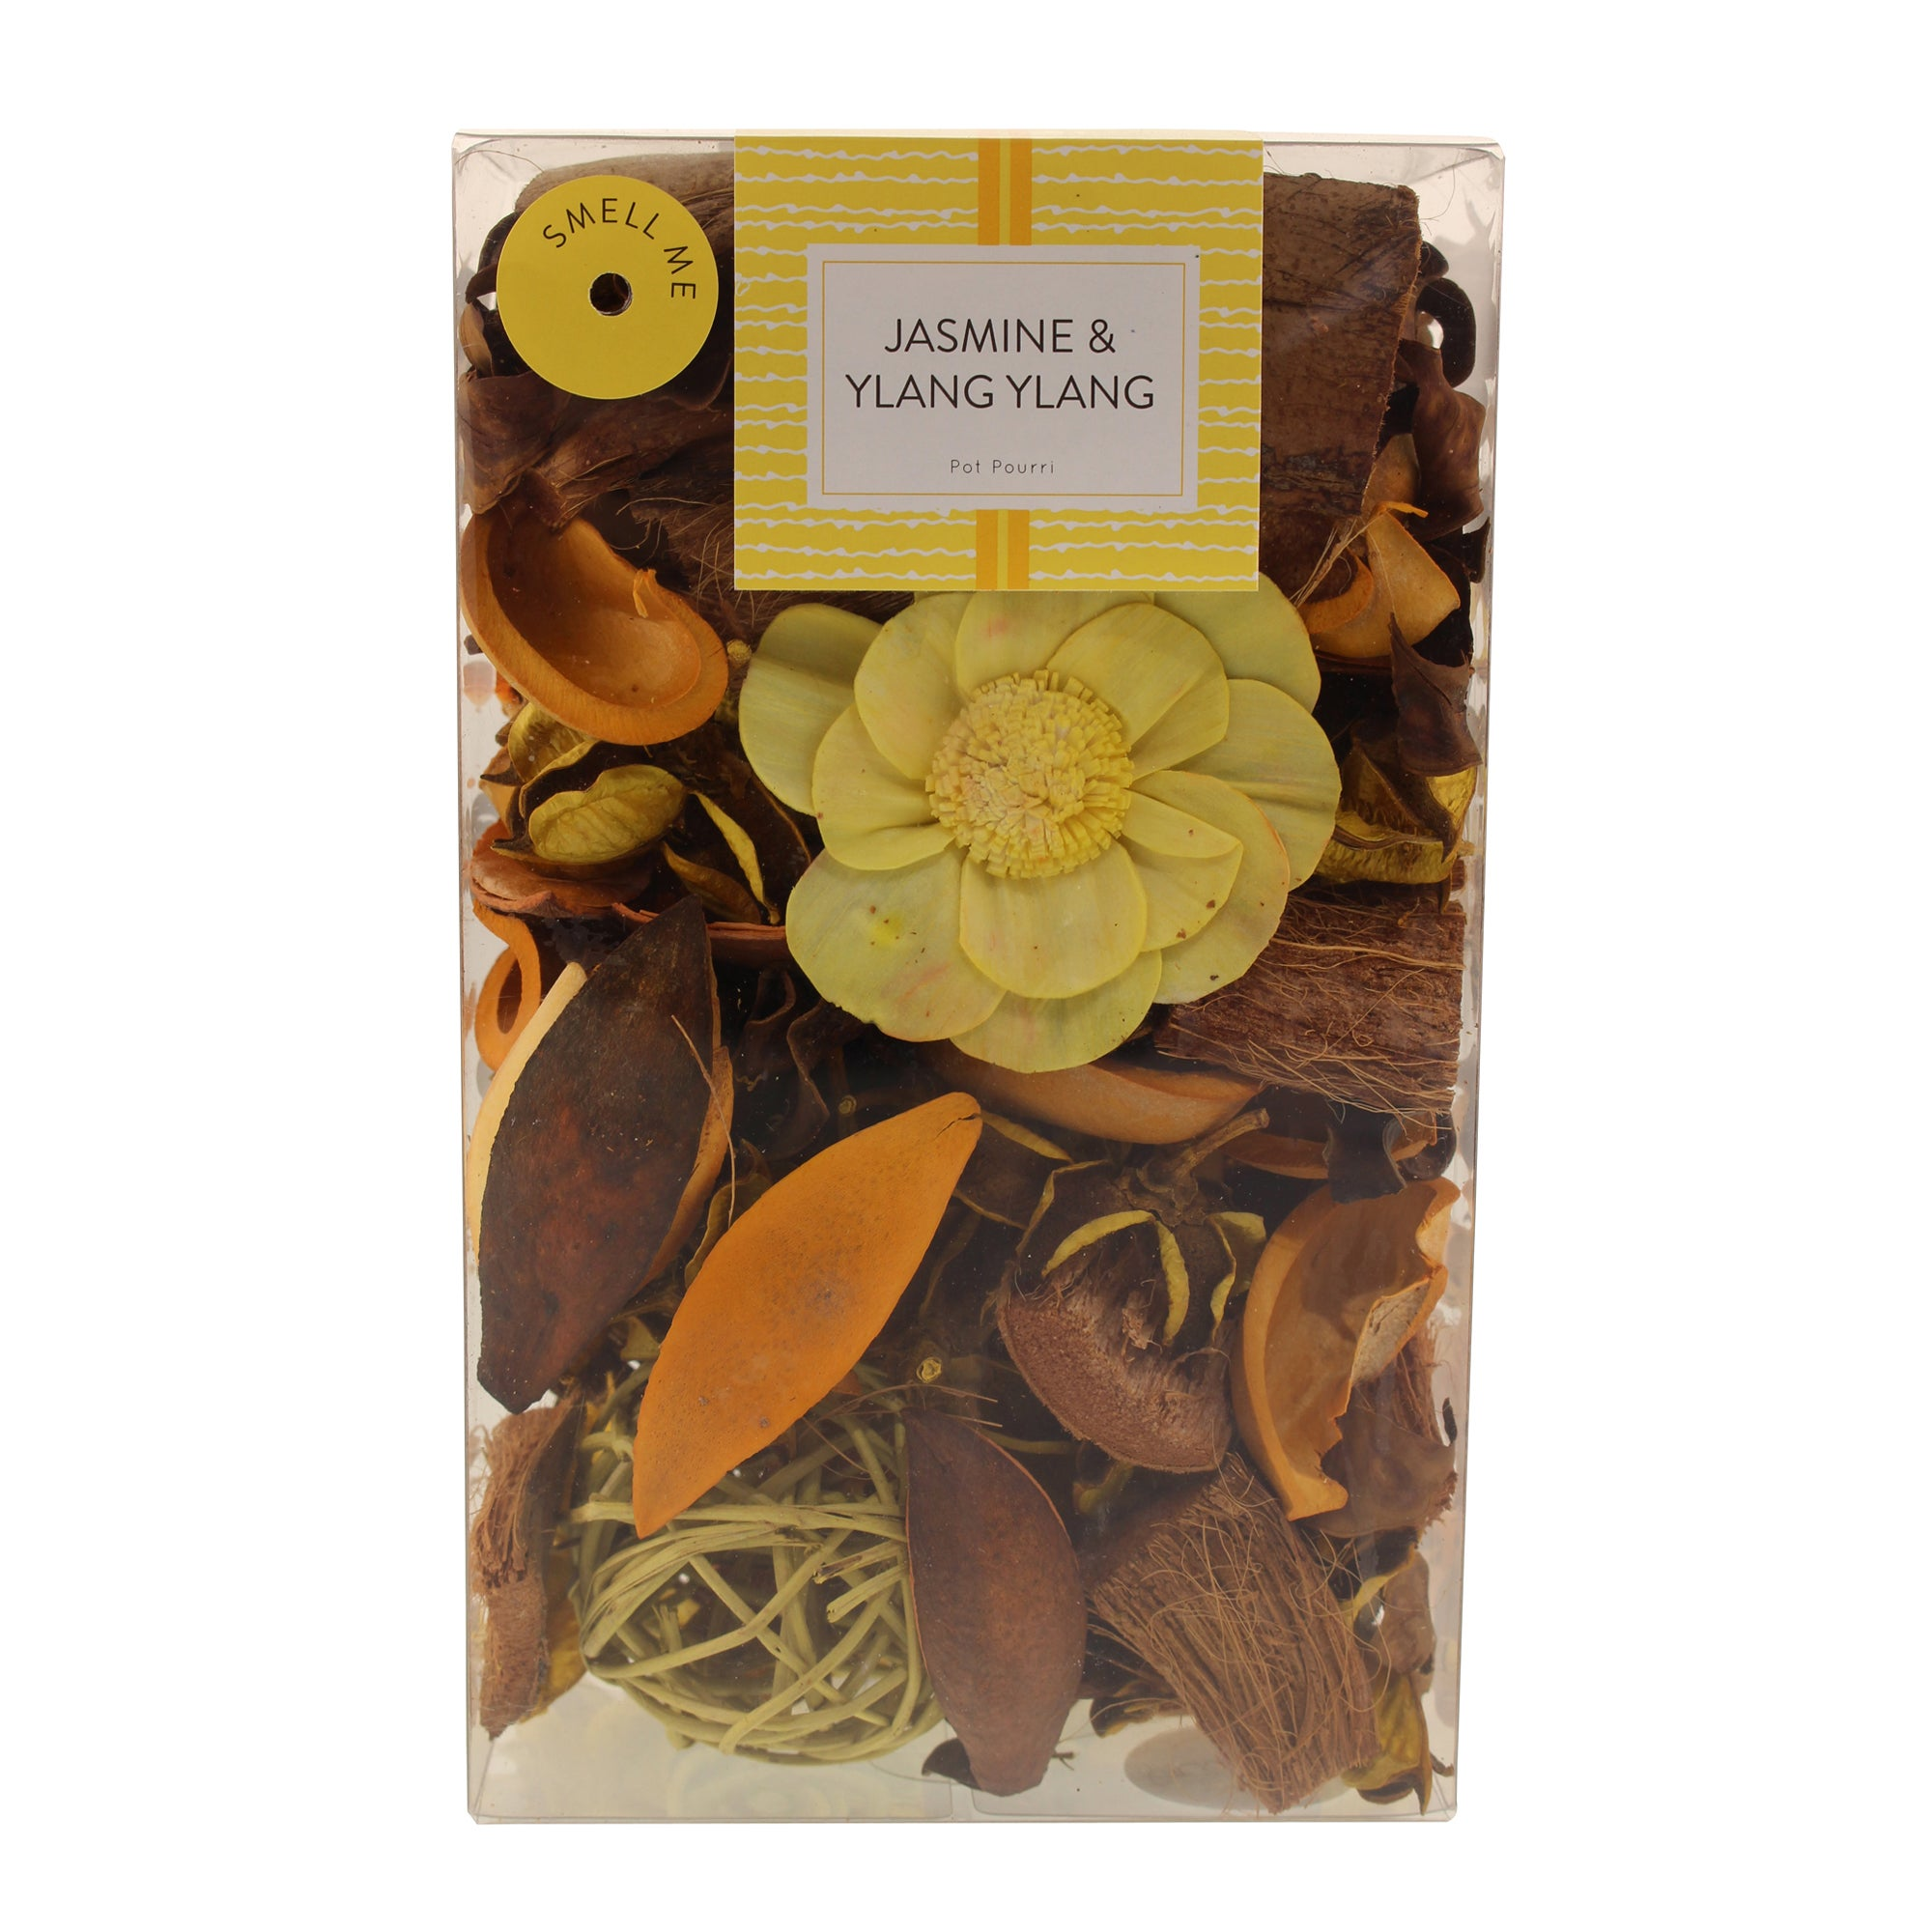 Jasmine and Ylang Ylang Pot Pourri